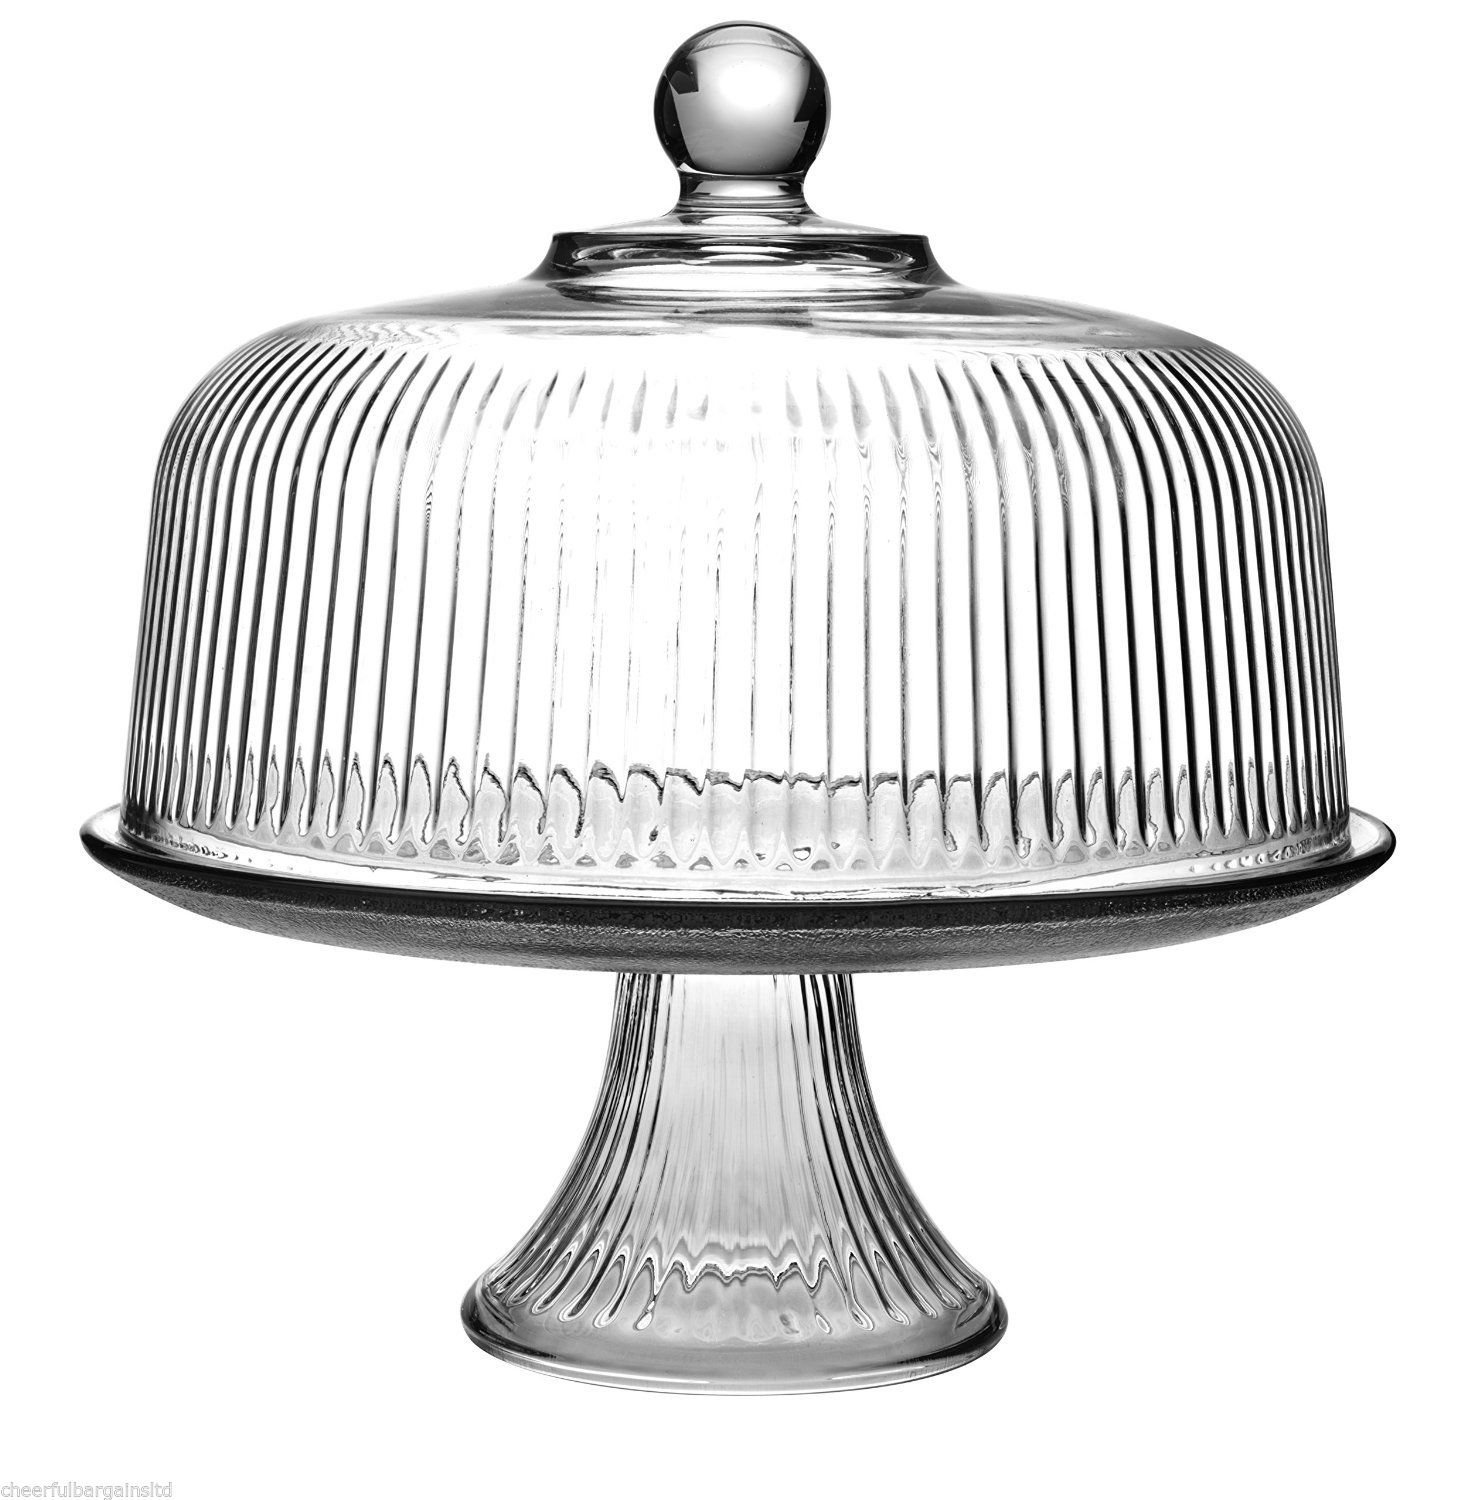 Multifunctional GLASS Cake Stand and Dome